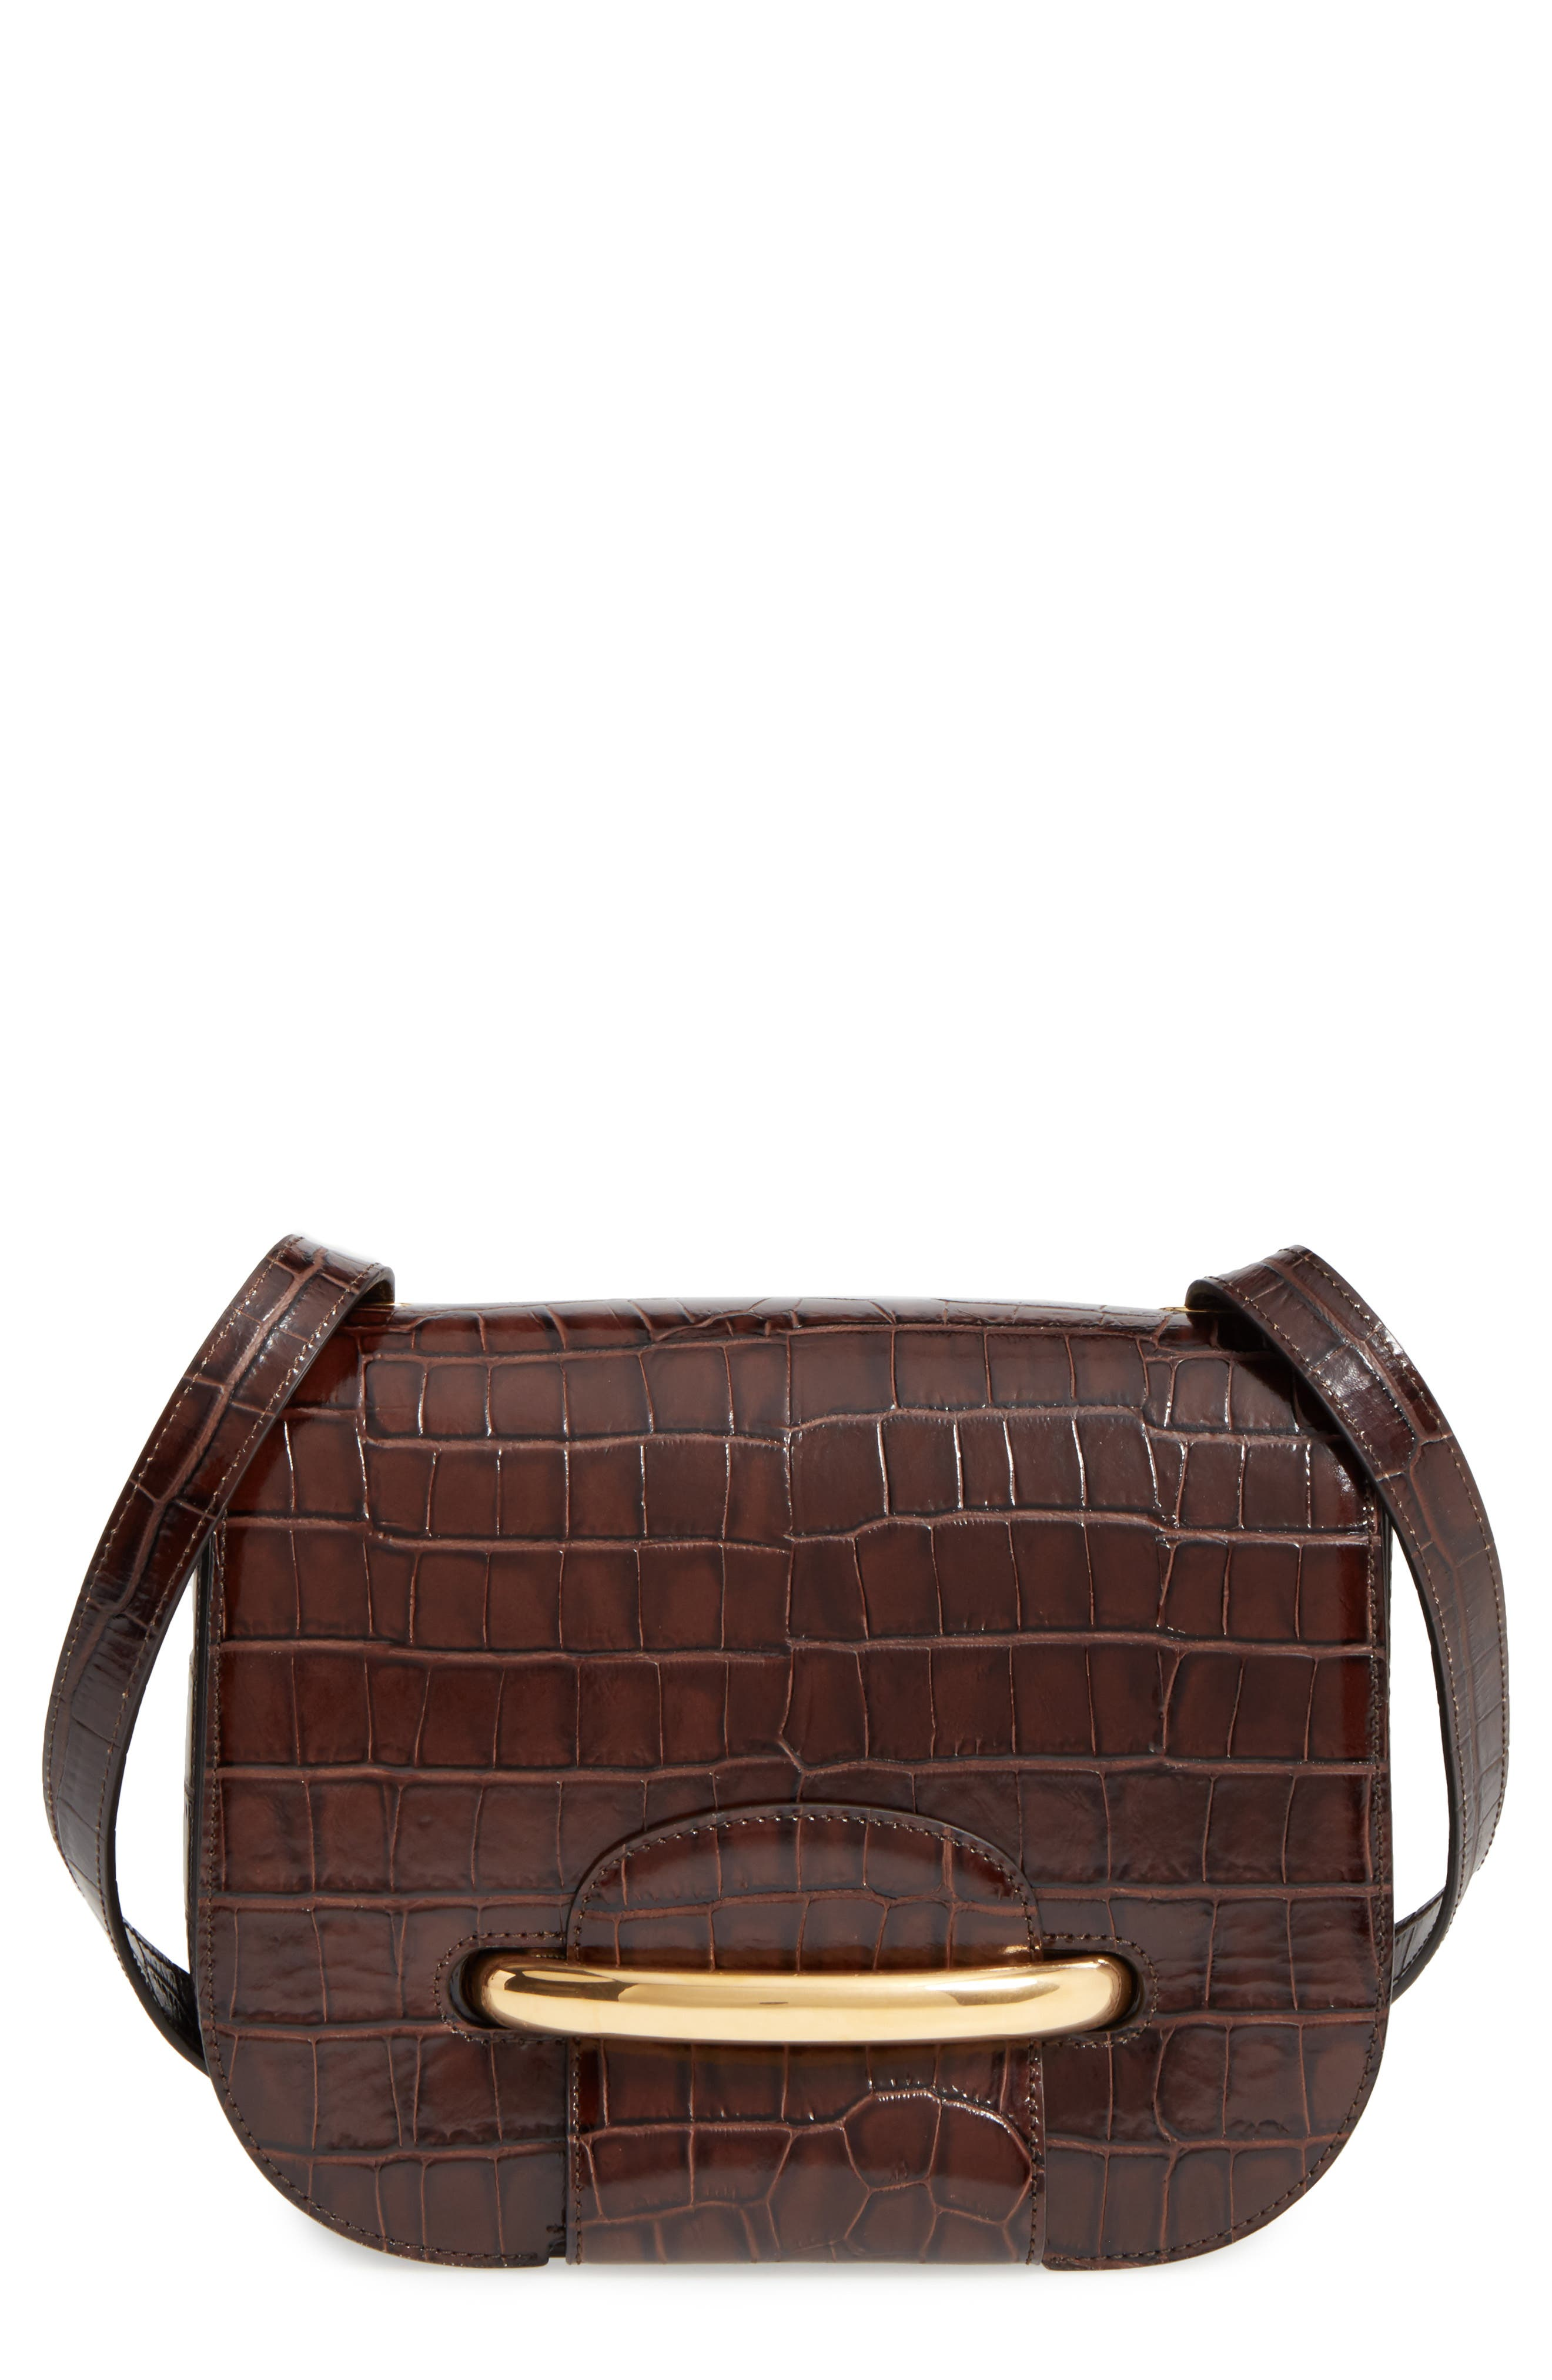 MULBERRY Selwood Leather Saddle Bag, Main, color, 200